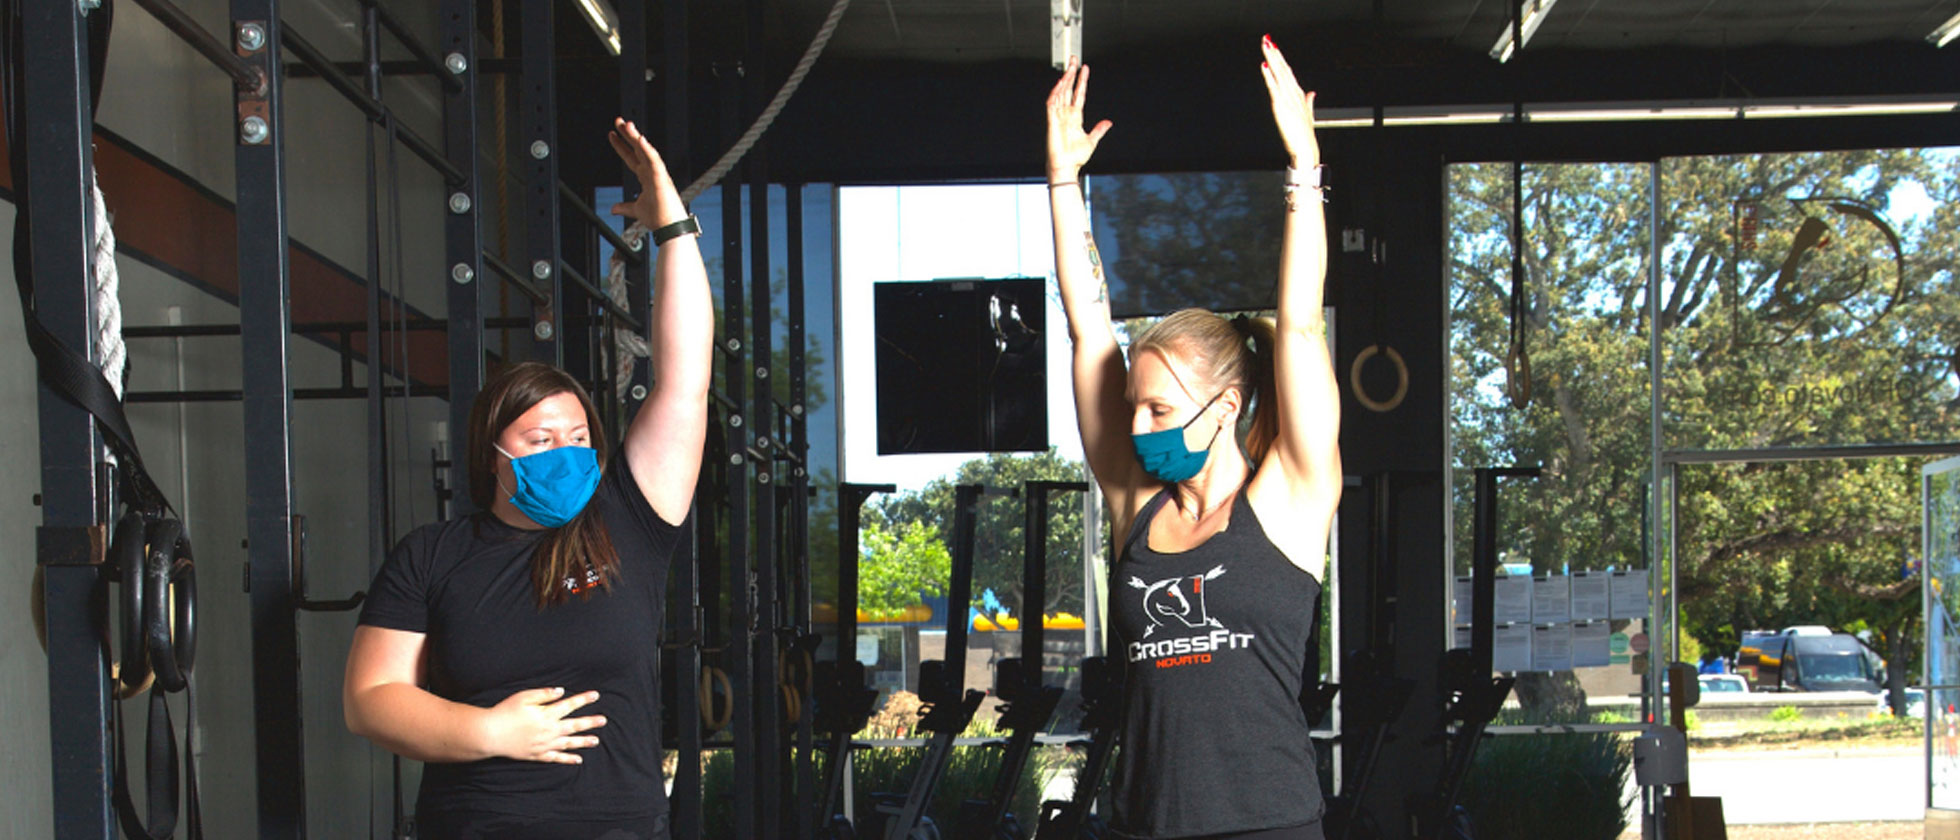 Top 5 Best Gyms To Join Near Me In San Marin